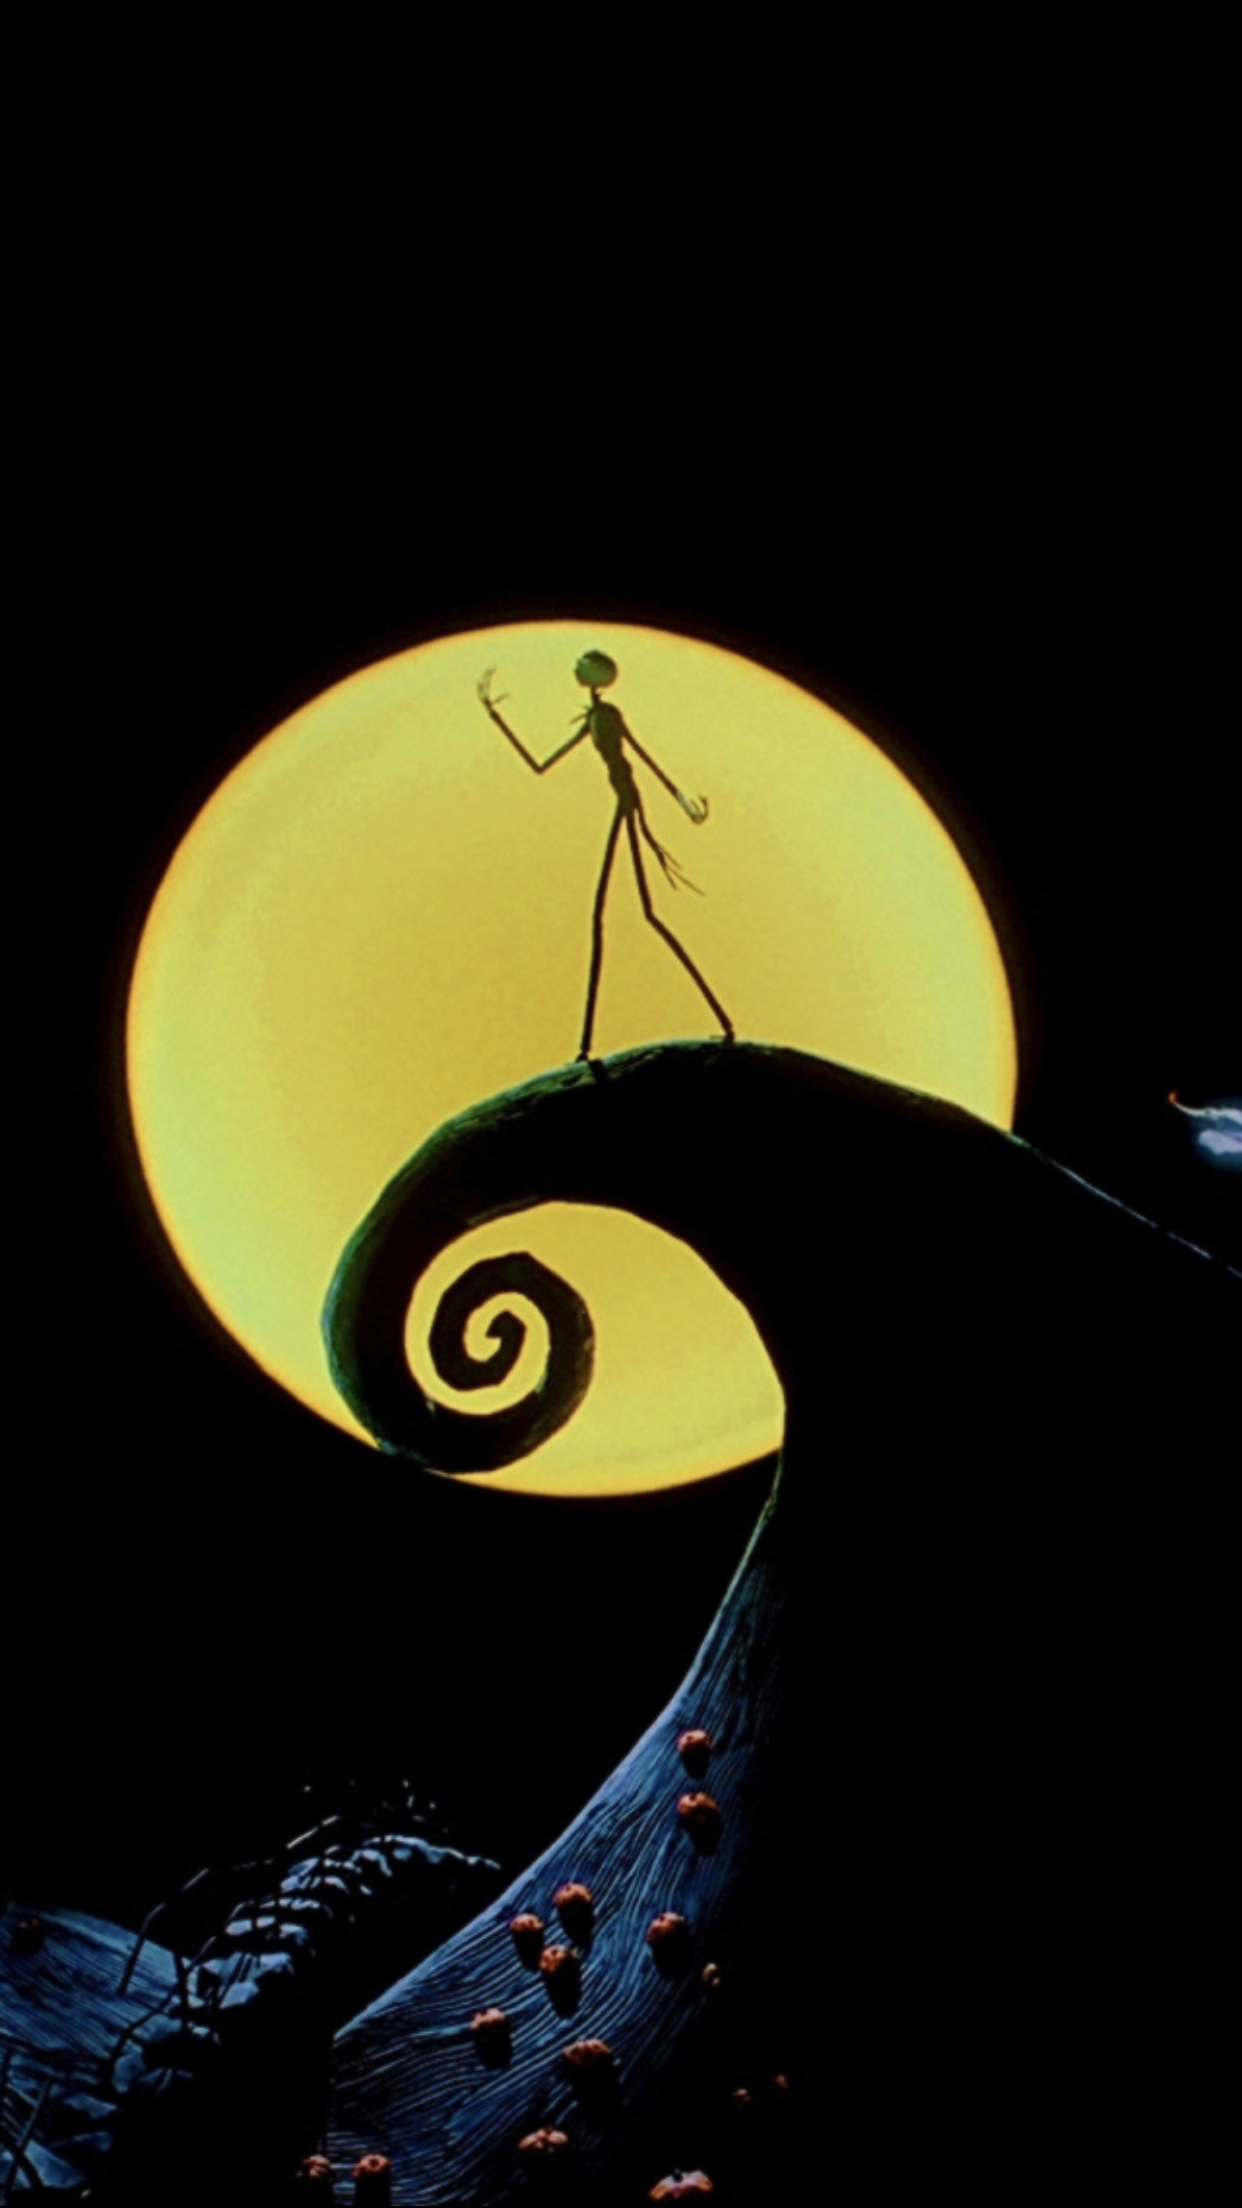 Pin By Dez On Wallpapers Halloween Wallpaper Nightmare Before